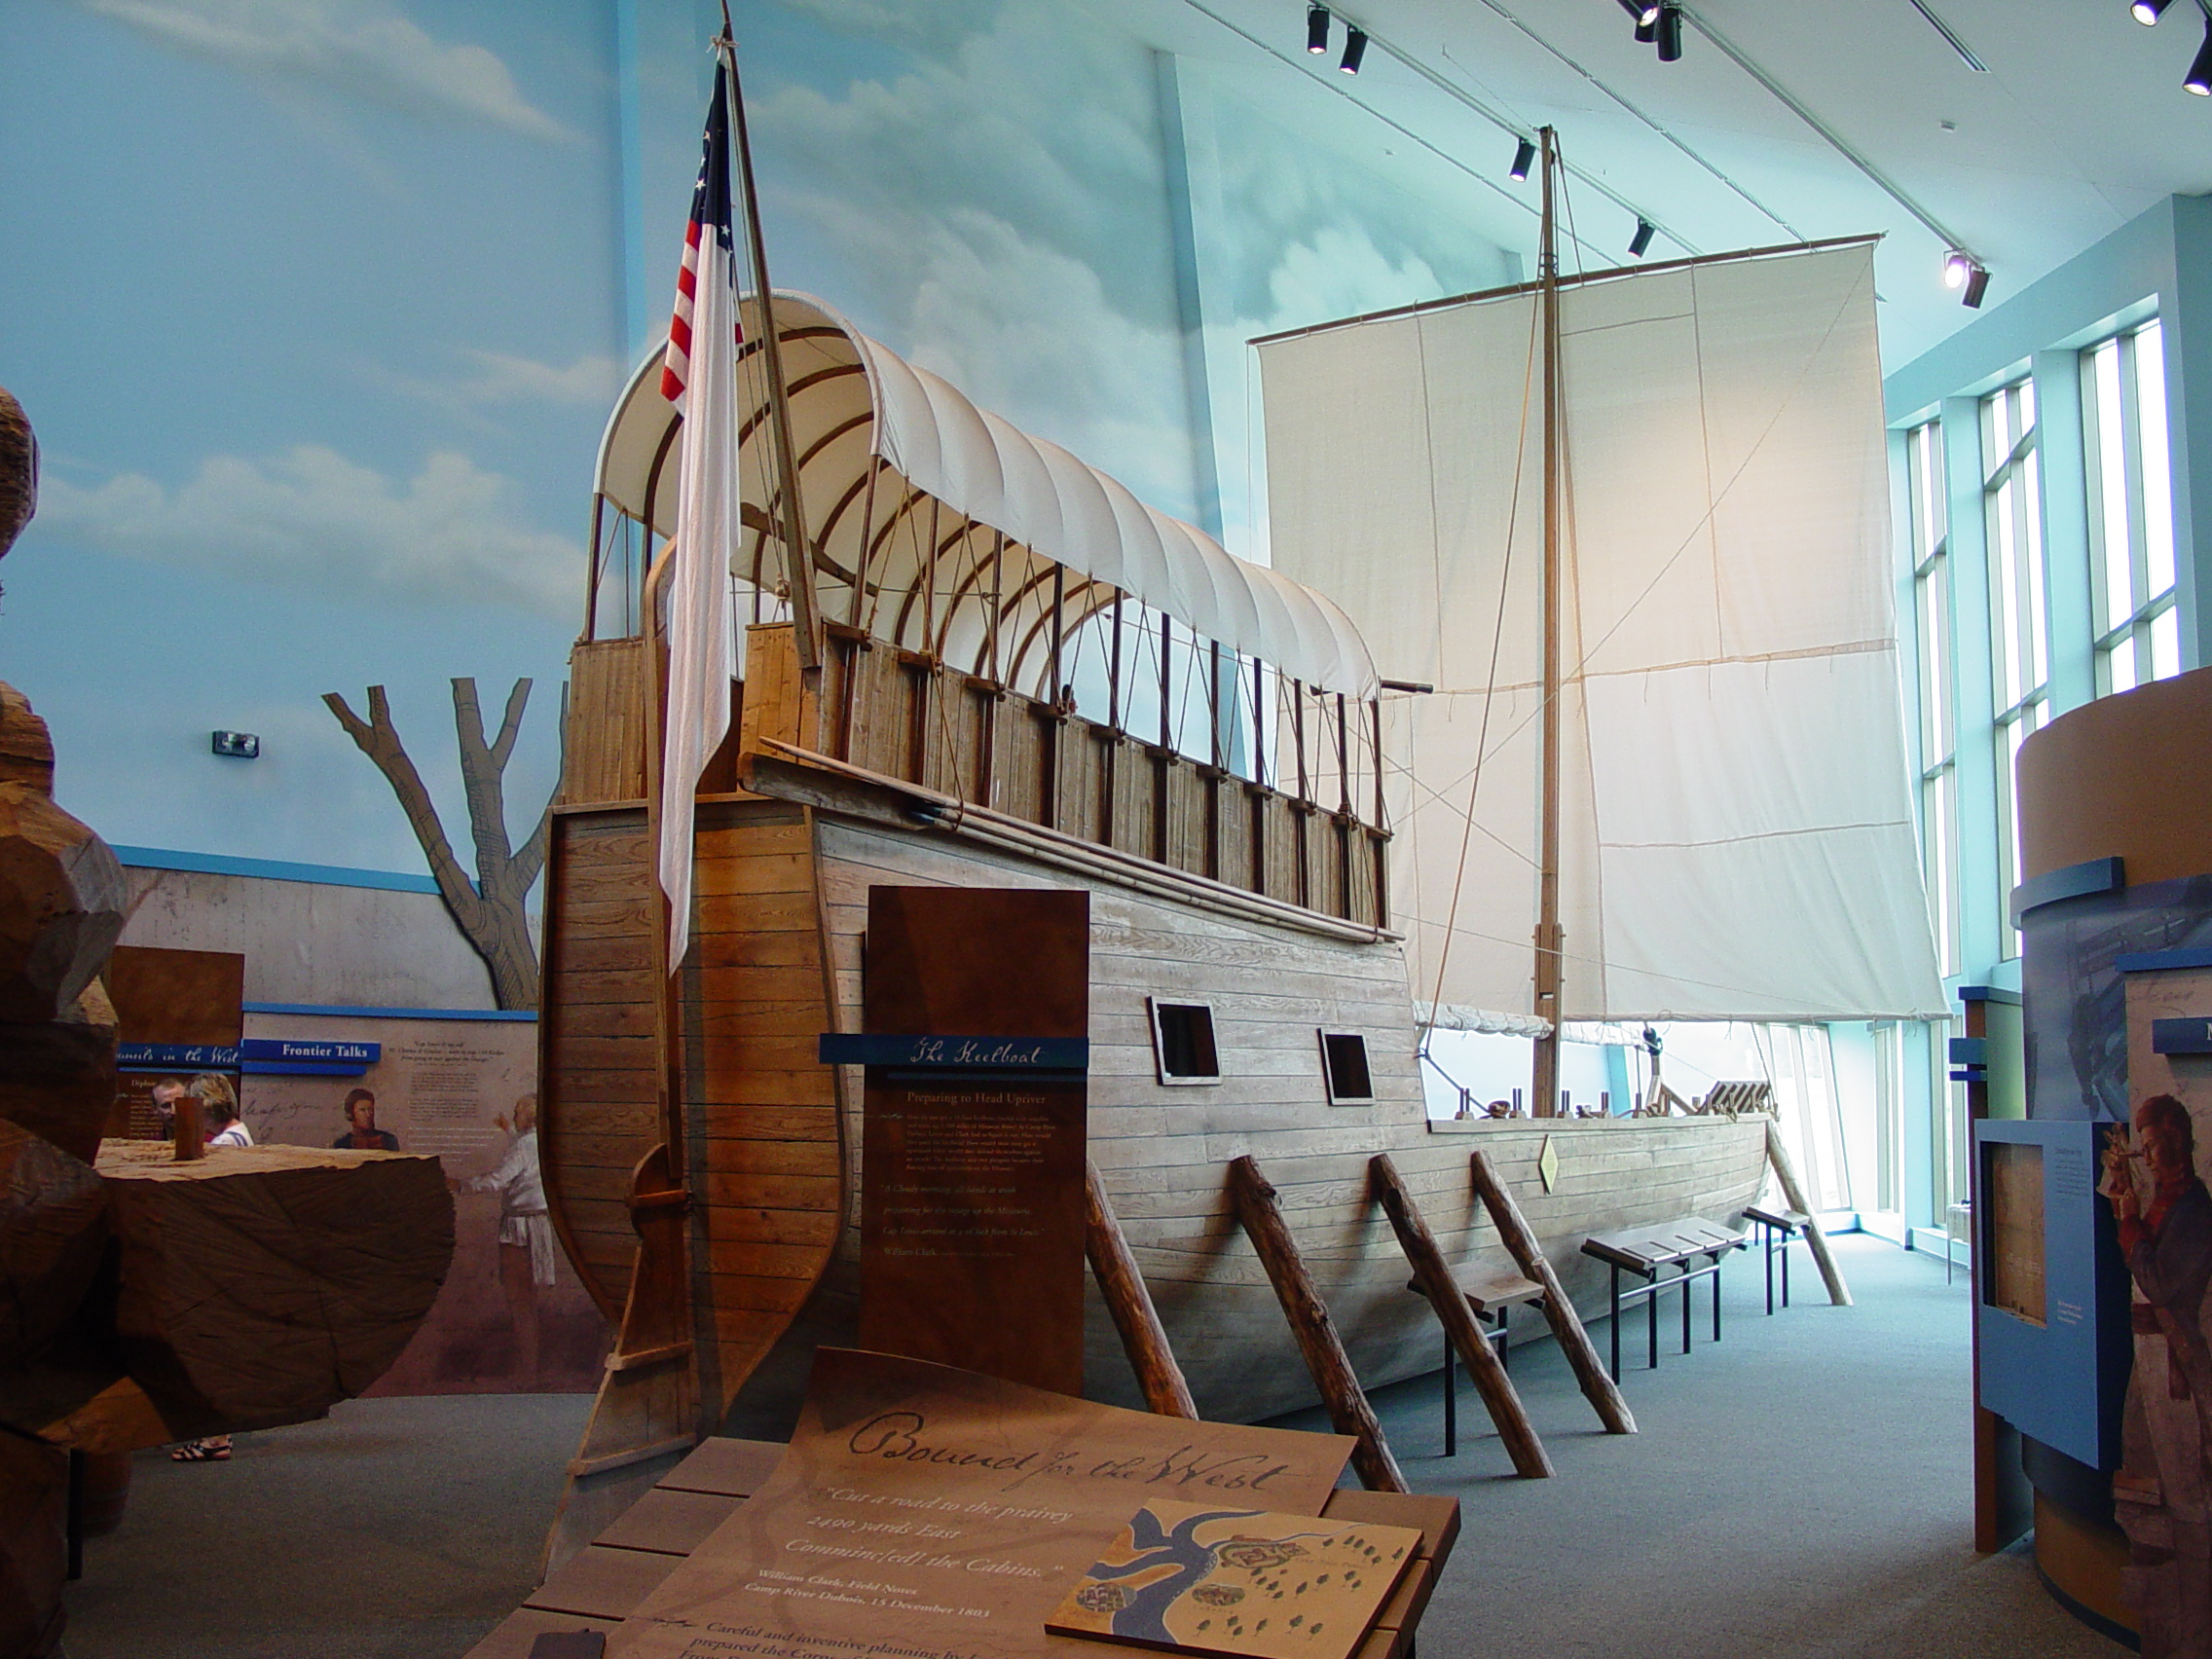 Keelboat exhibit within the visitor's center